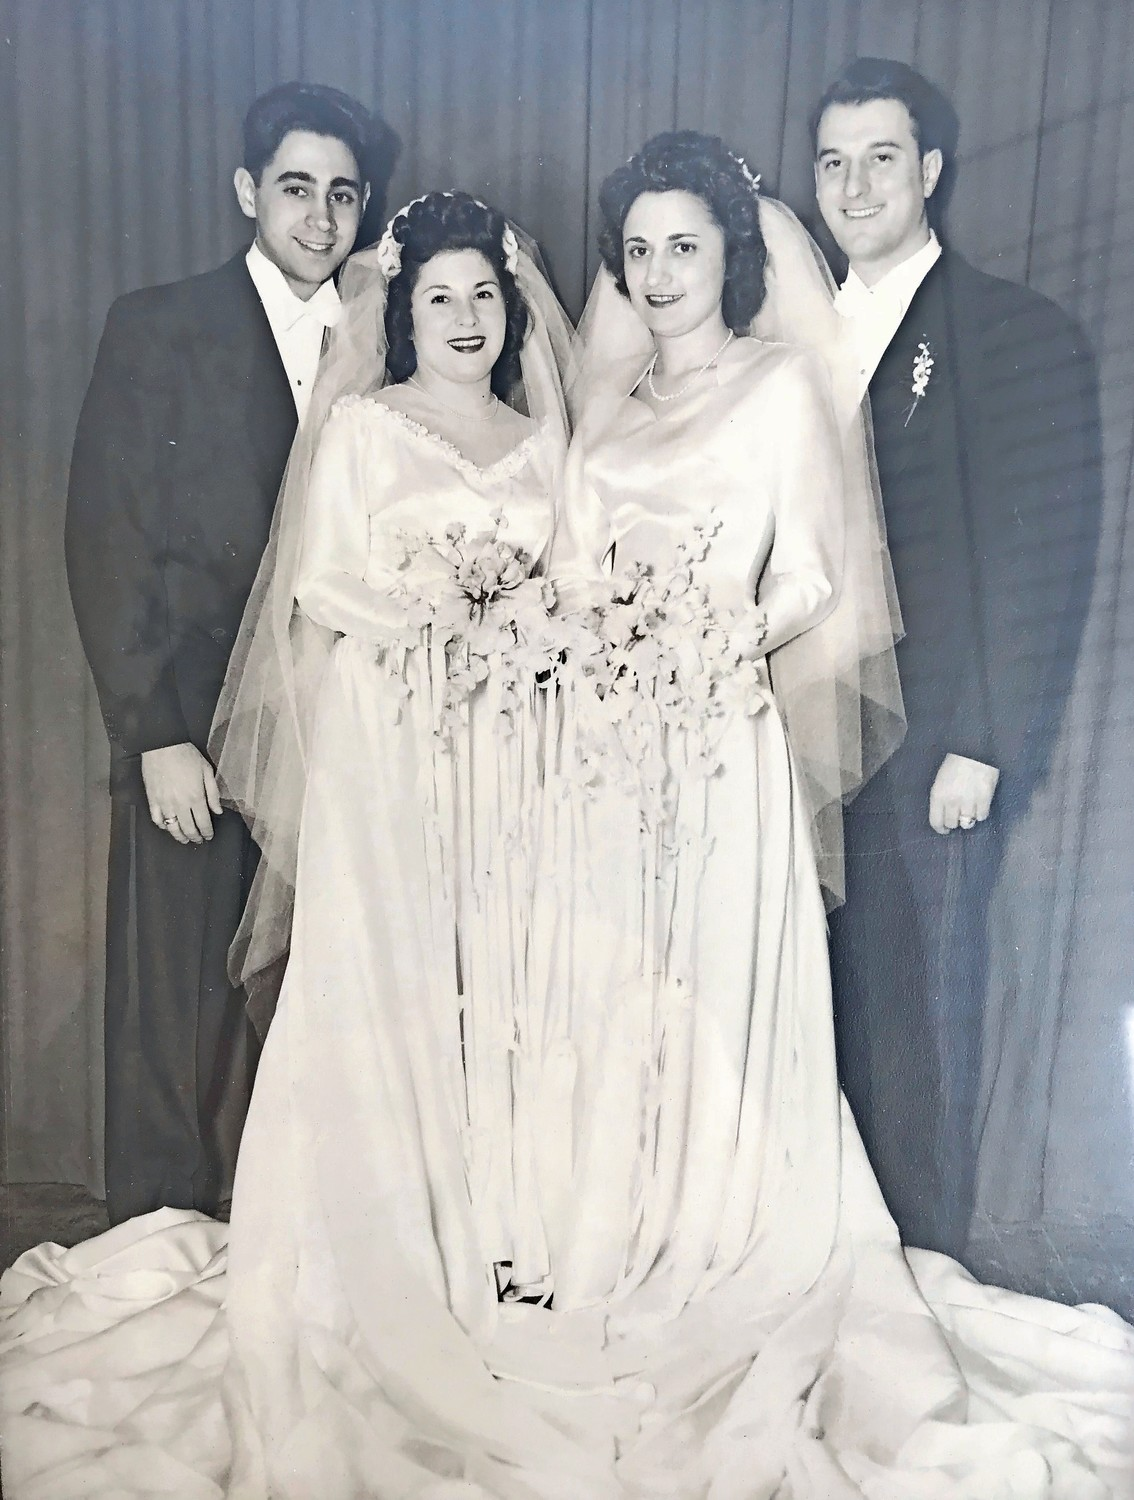 Johanna and Joseph Lucca, left, were married on Jan. 4, 1948, in a joint wedding with Joseph's twin sister, Ann, and her husband, Joe LaGrotta.